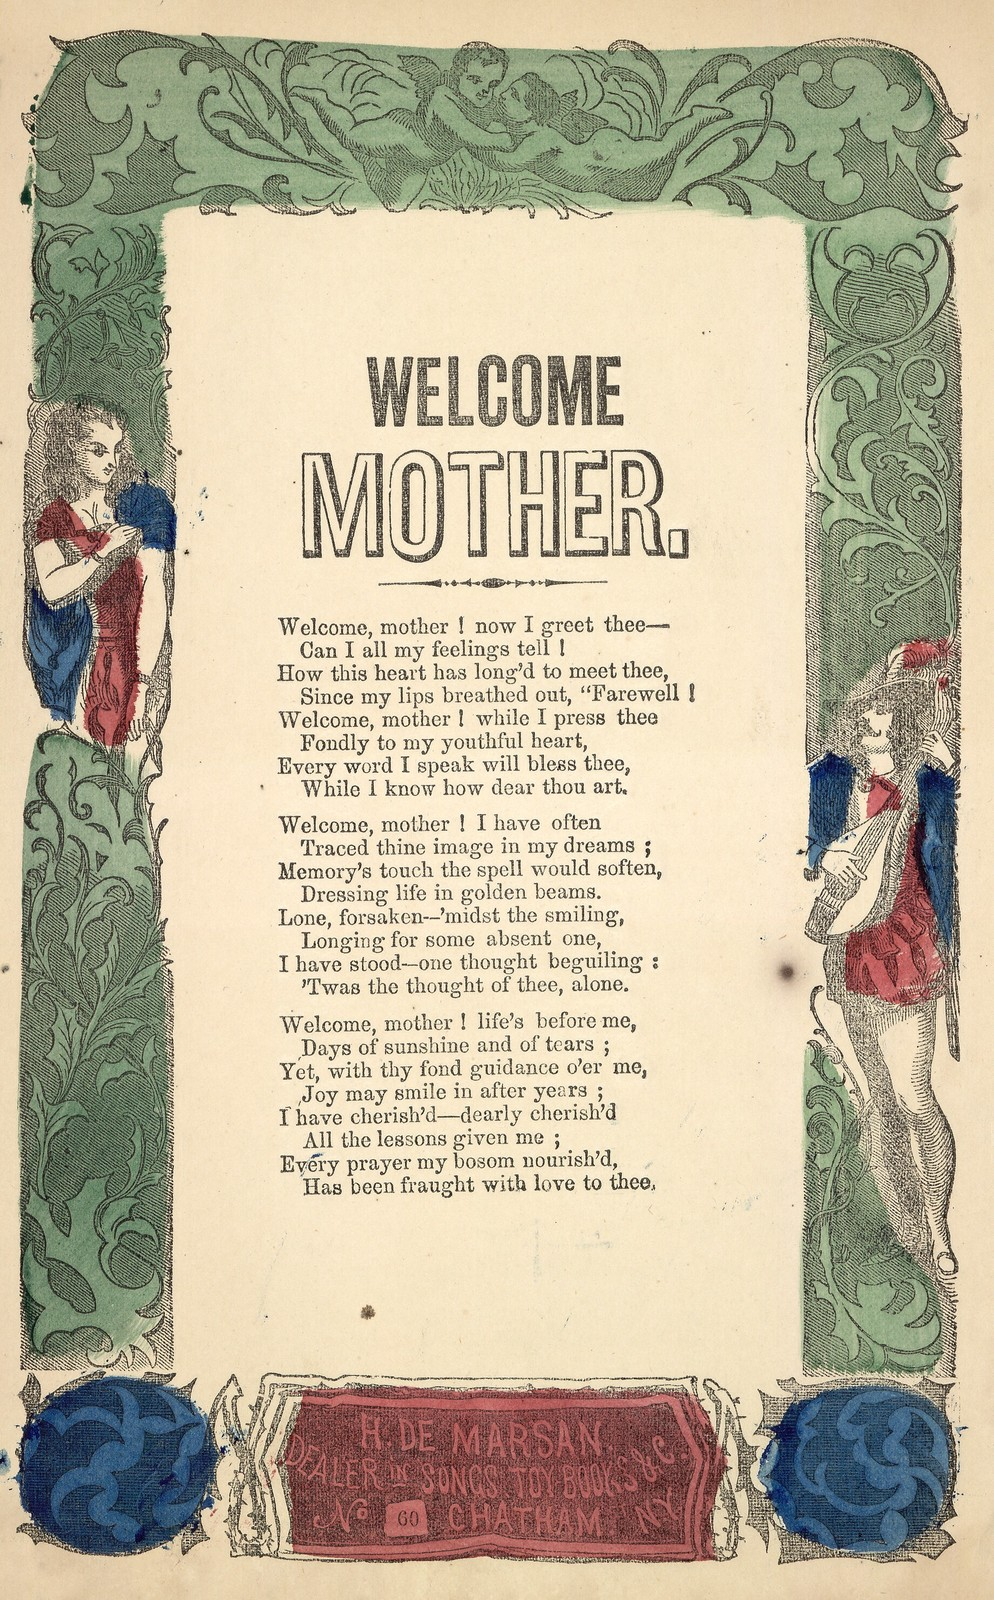 Welcome Mother. H. De Marsan, Publisher, 60 Chatham Street, N. Y